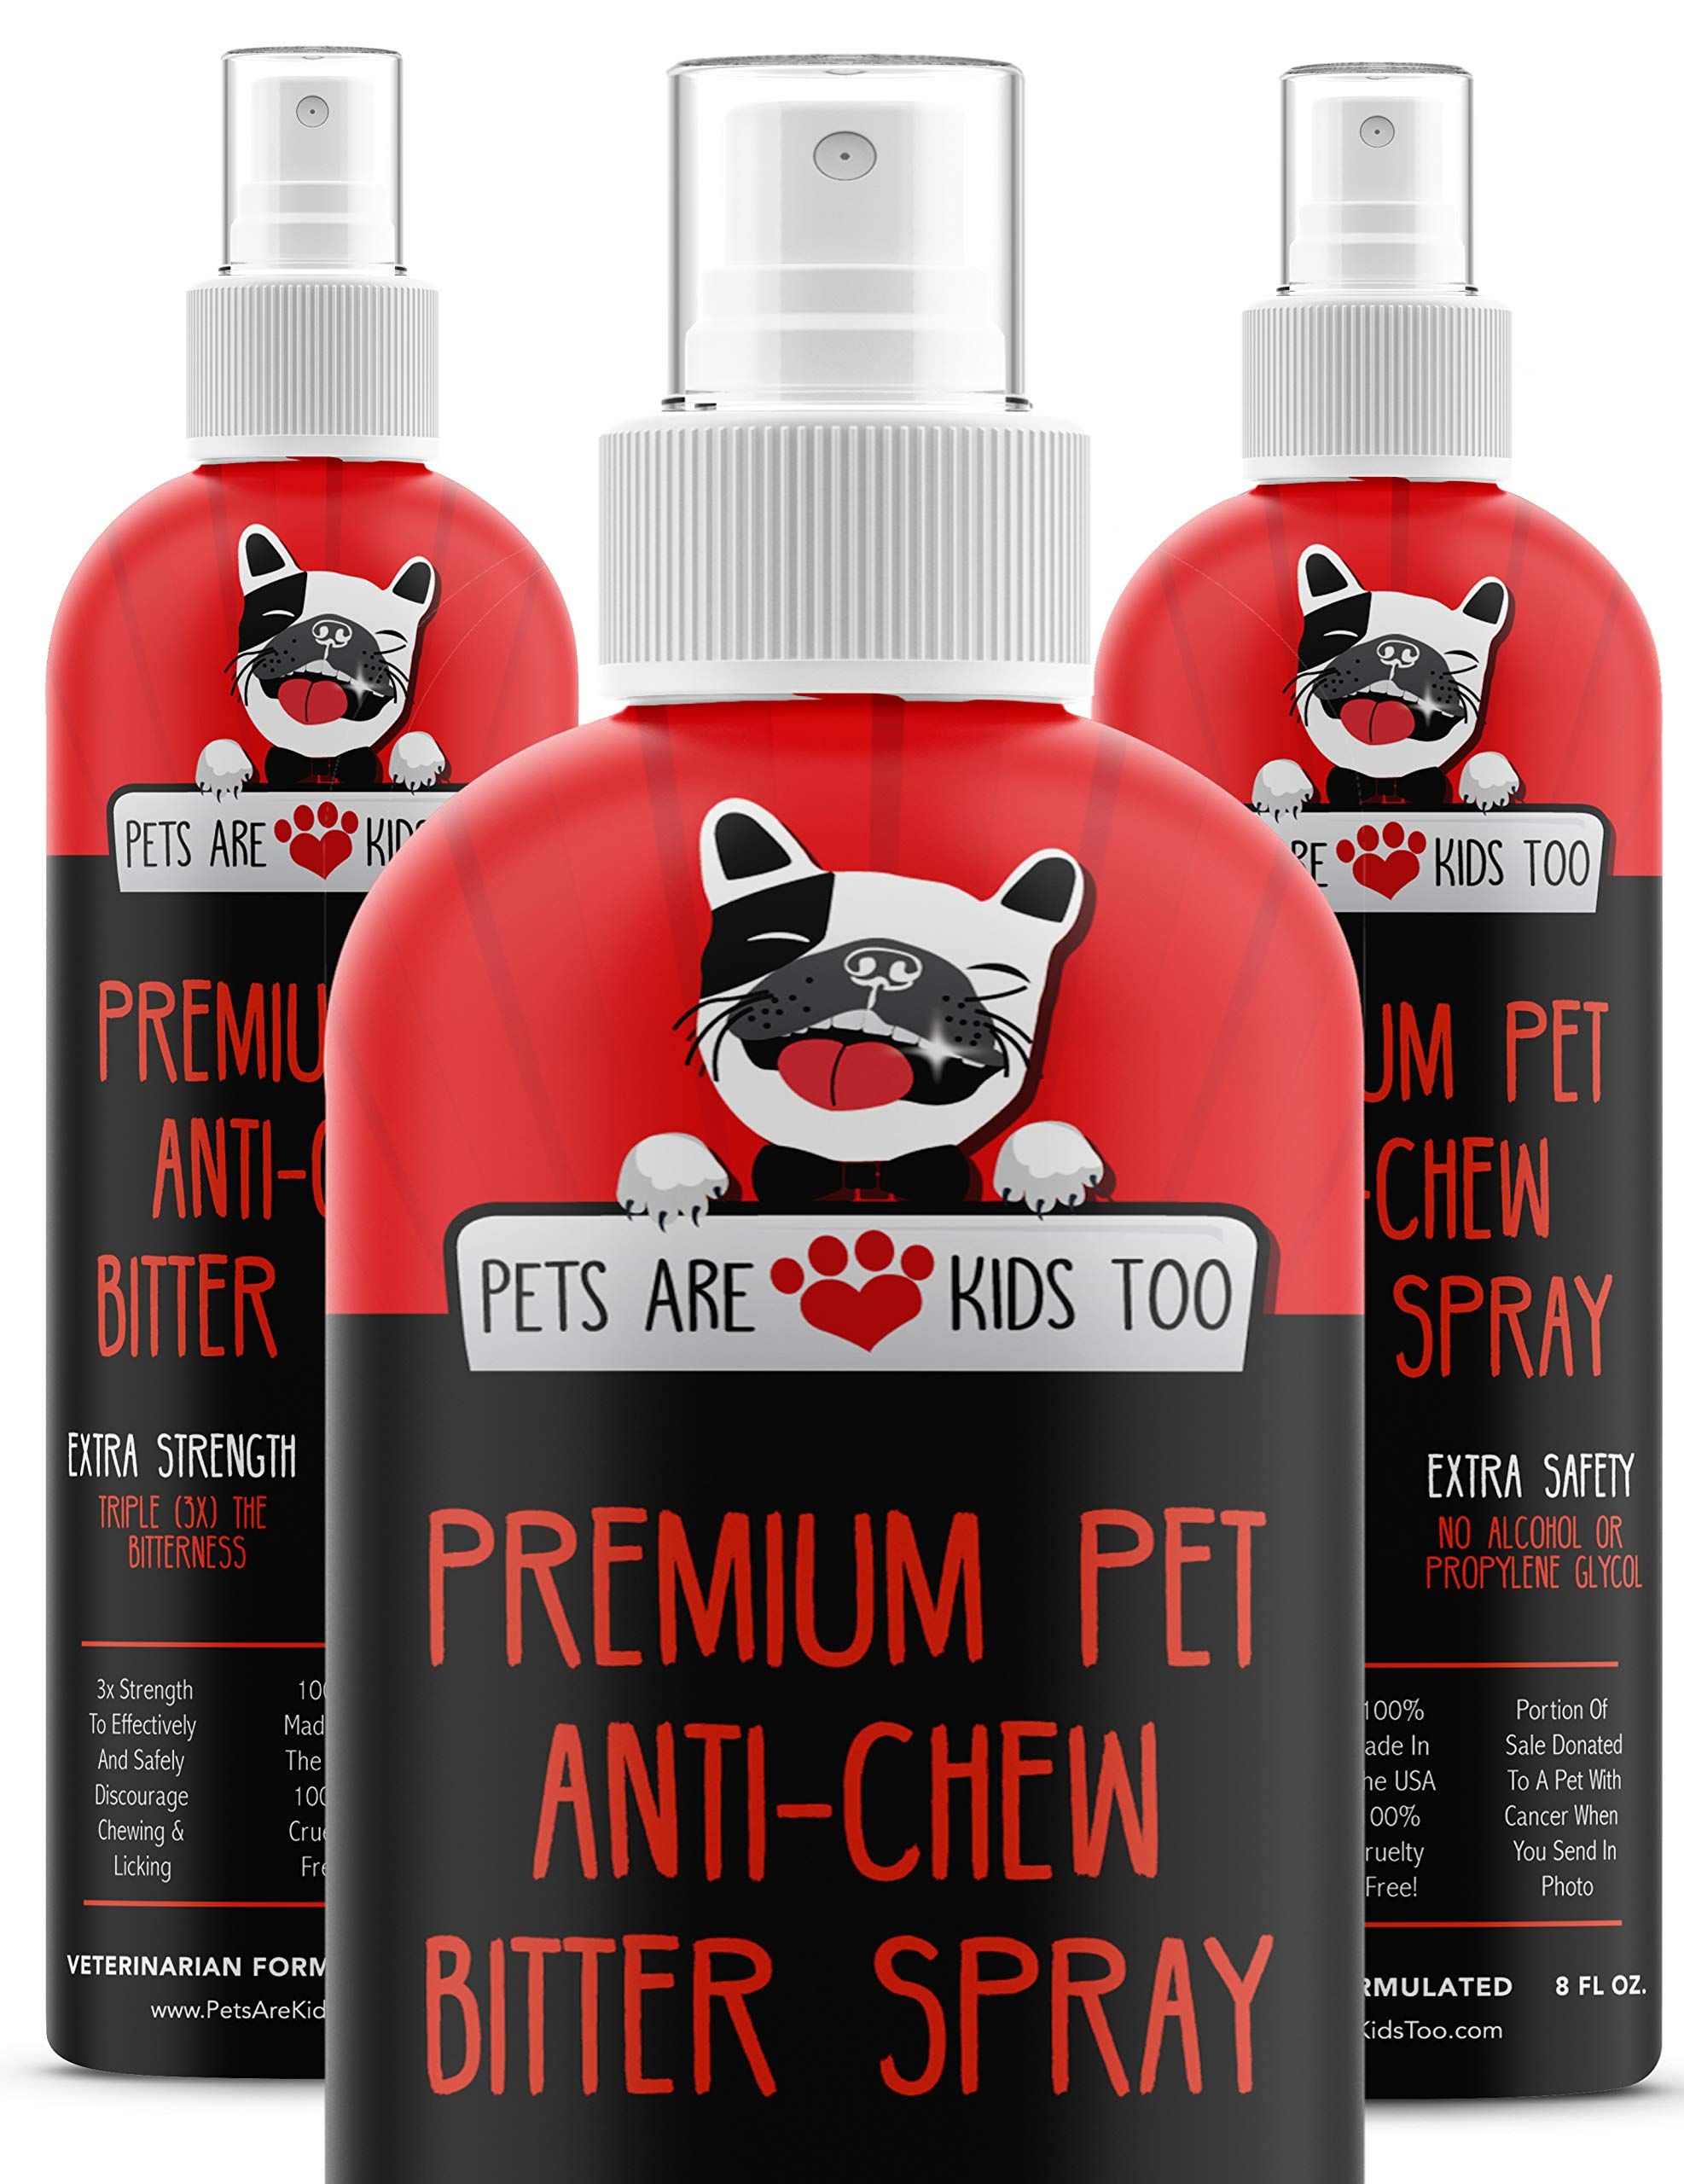 Anti Chew Dog Training Spray: No Chew Bitter Spray and Pet Deterrent for Dogs and Cats - Behavior Correction to Stop Chewing and Licking - Safe for Furniture, Paws and Bandages - 8 Oz (3 Pack) by Pets Are Kids Too